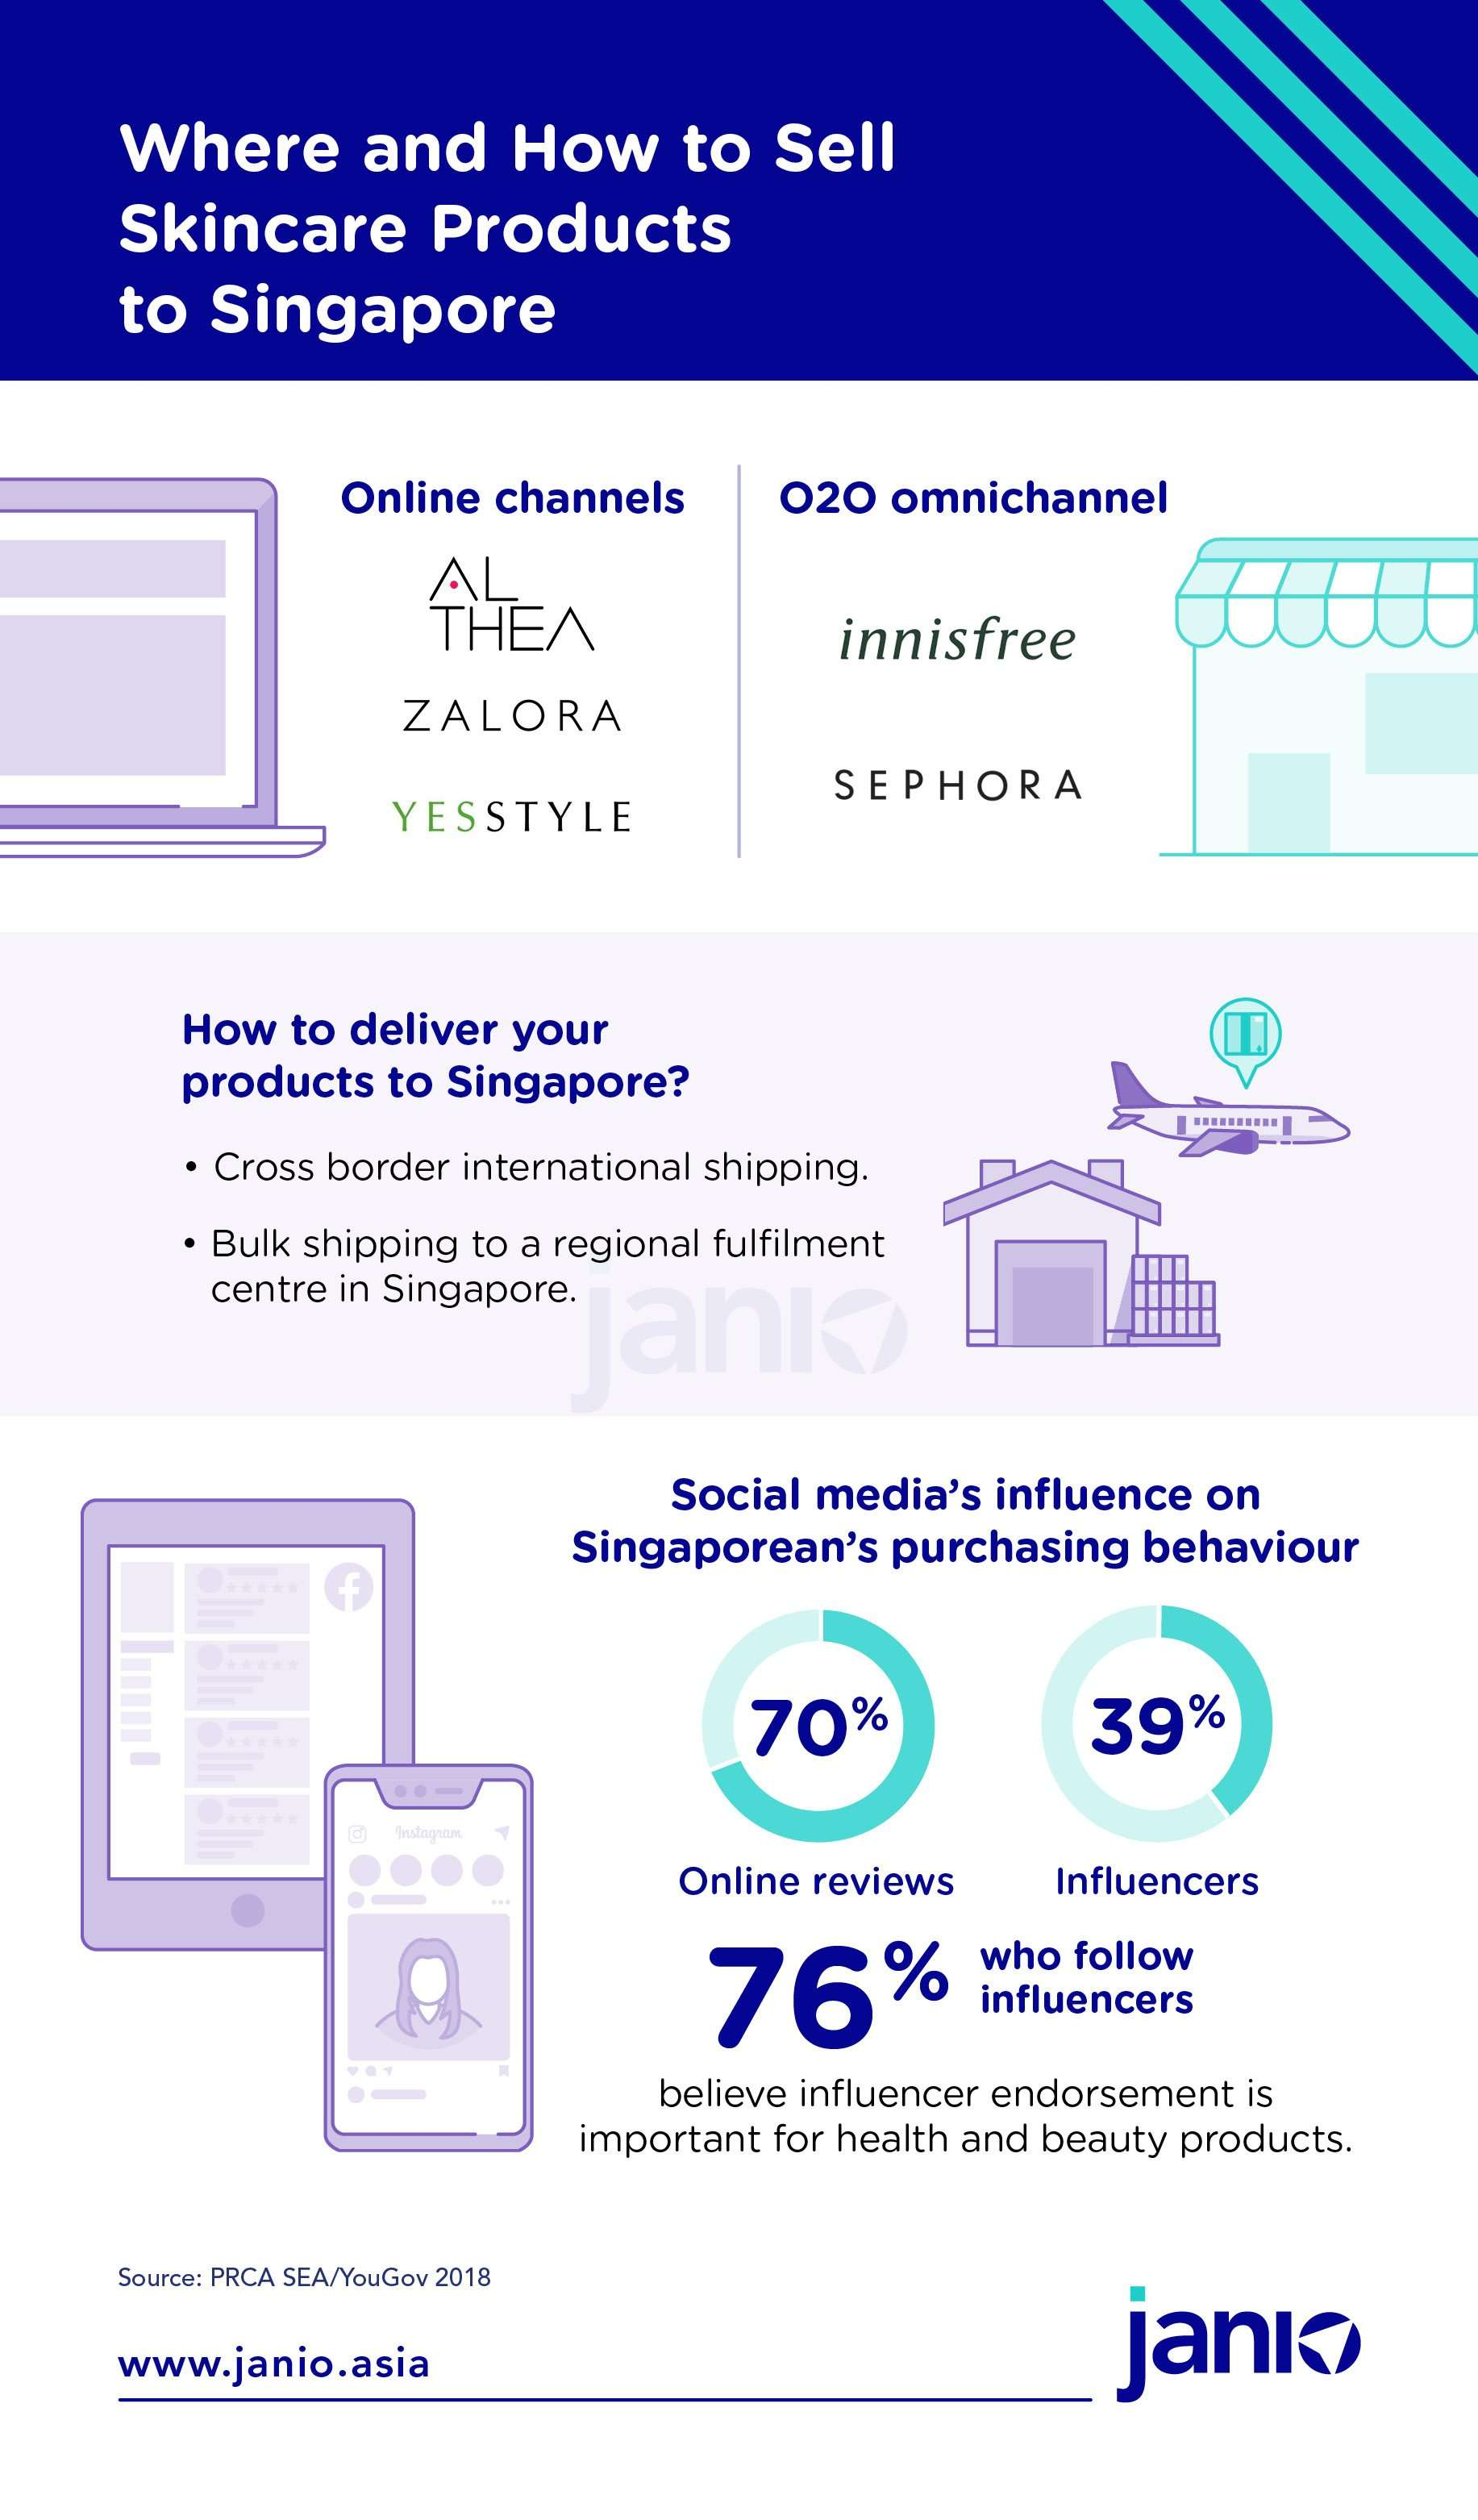 Where and How to Sell your eCommerce Skincare products in Singapore - Online and Offline to online channels and statistics on social media's influence on Singaporean purchasing behaviour